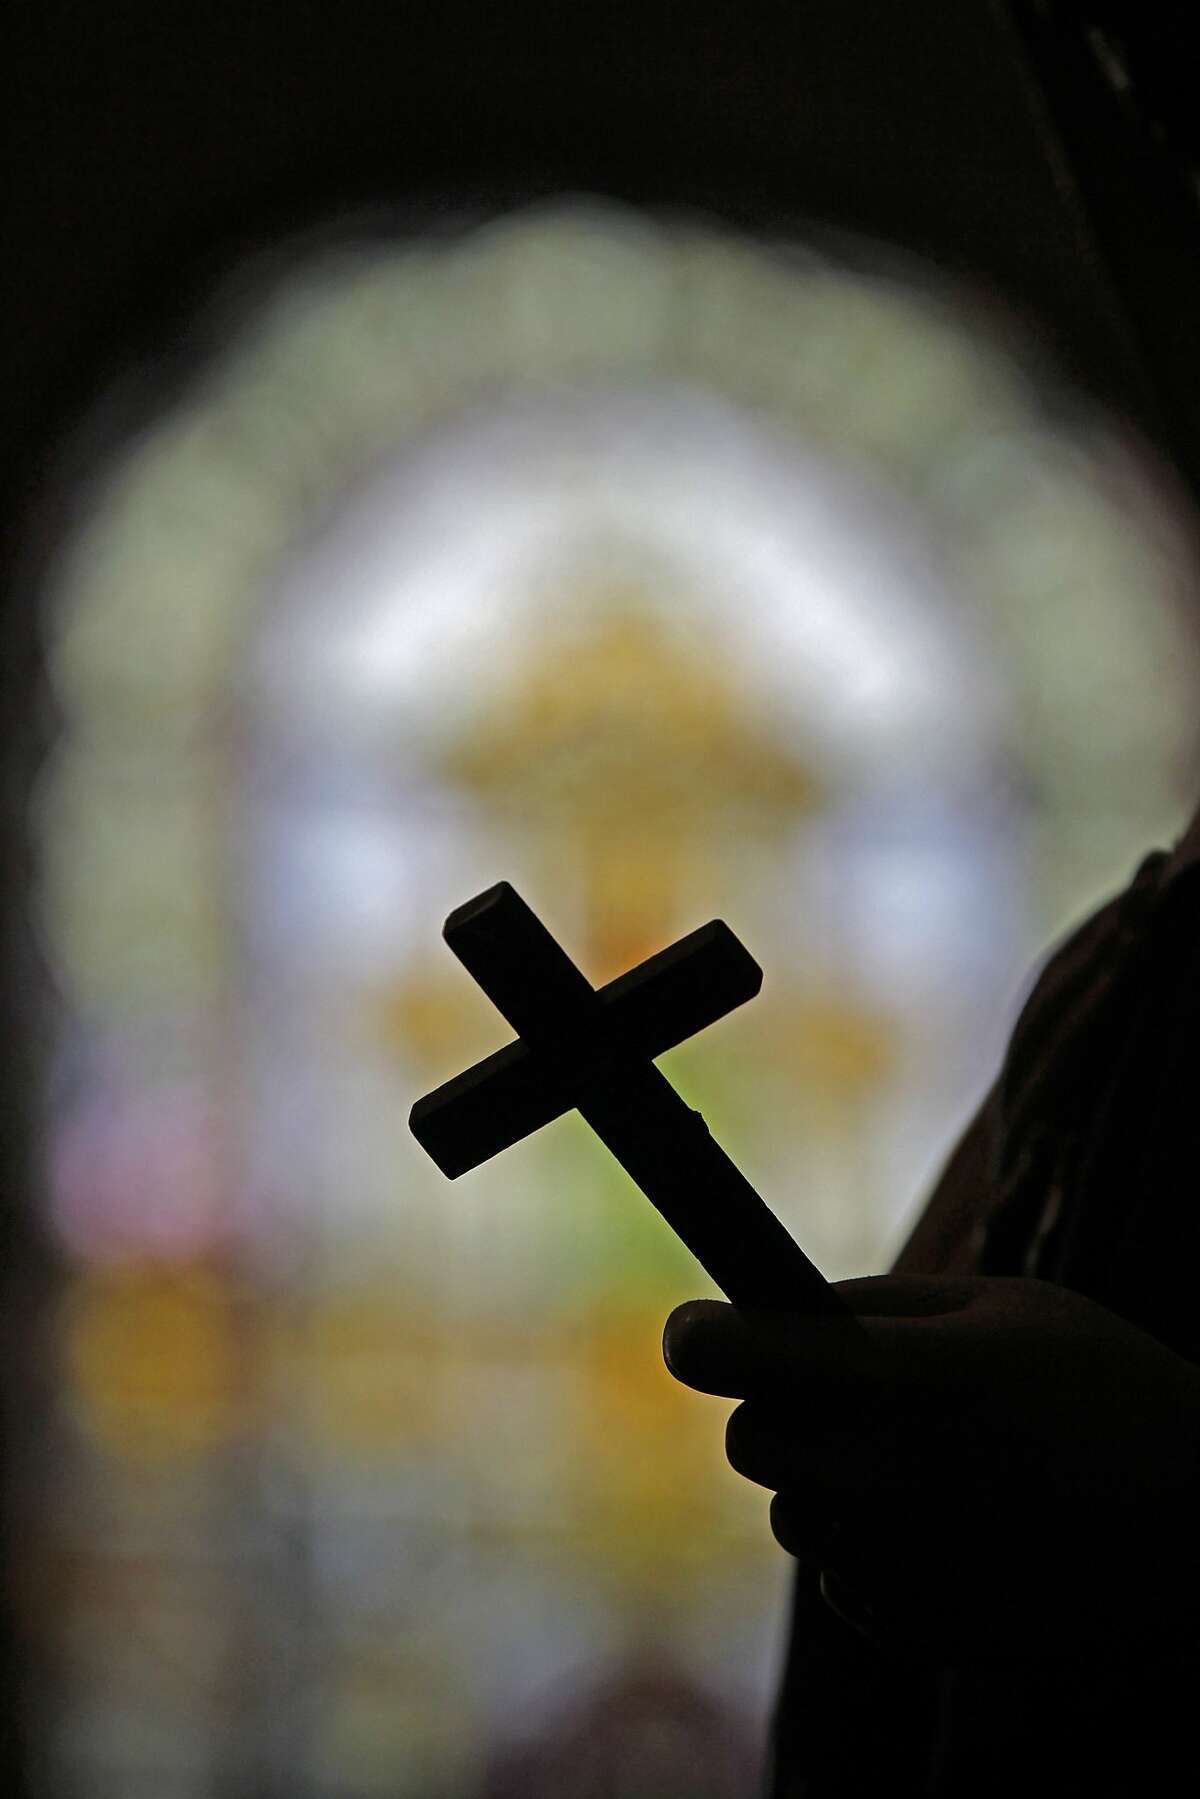 In this Dec. 1, 2012 photo, a silhouette of a crucifix and a stained glass window is seen inside a Catholic Church in New Orleans. Catholic groups are decrying a recent Louisiana Supreme Court decision that reaches into the most sanctified of Catholic places, the confessional booth. The high court has revived a sex abuse lawsuit in which parents are suing a priest and a local diocese for not reporting the alleged abuse when the teenager told the priest about it, and the ruling could have a priest asked to testify about what was said in a private confession. The Catholic League for Religious and Civil Rights says the ruling leaves the priest choosing between prison and excommunication, in a case that has grabbed attention in heavily Catholic south Louisiana. (AP Photo/Gerald Herbert)